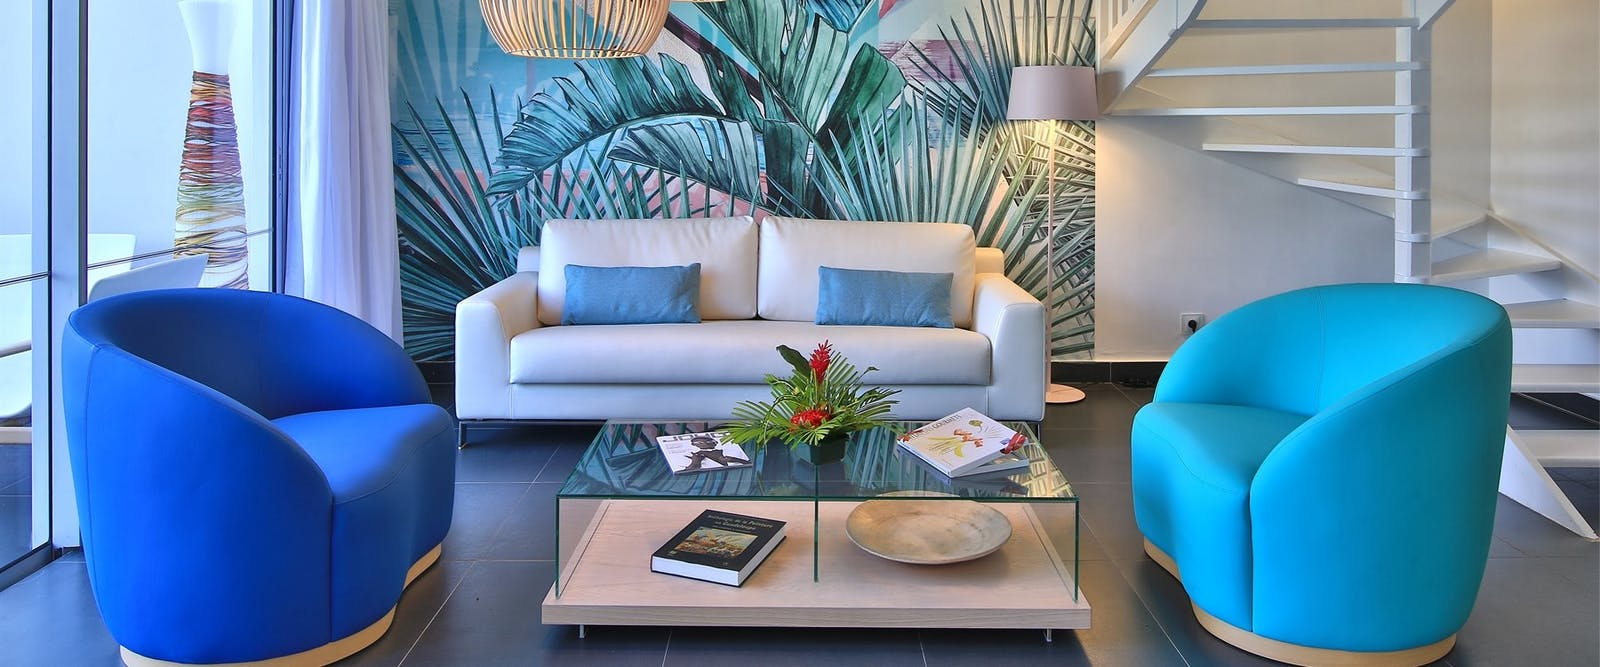 Living Room At Mahogany Hotel Residencia & Spa, Guadeloupe